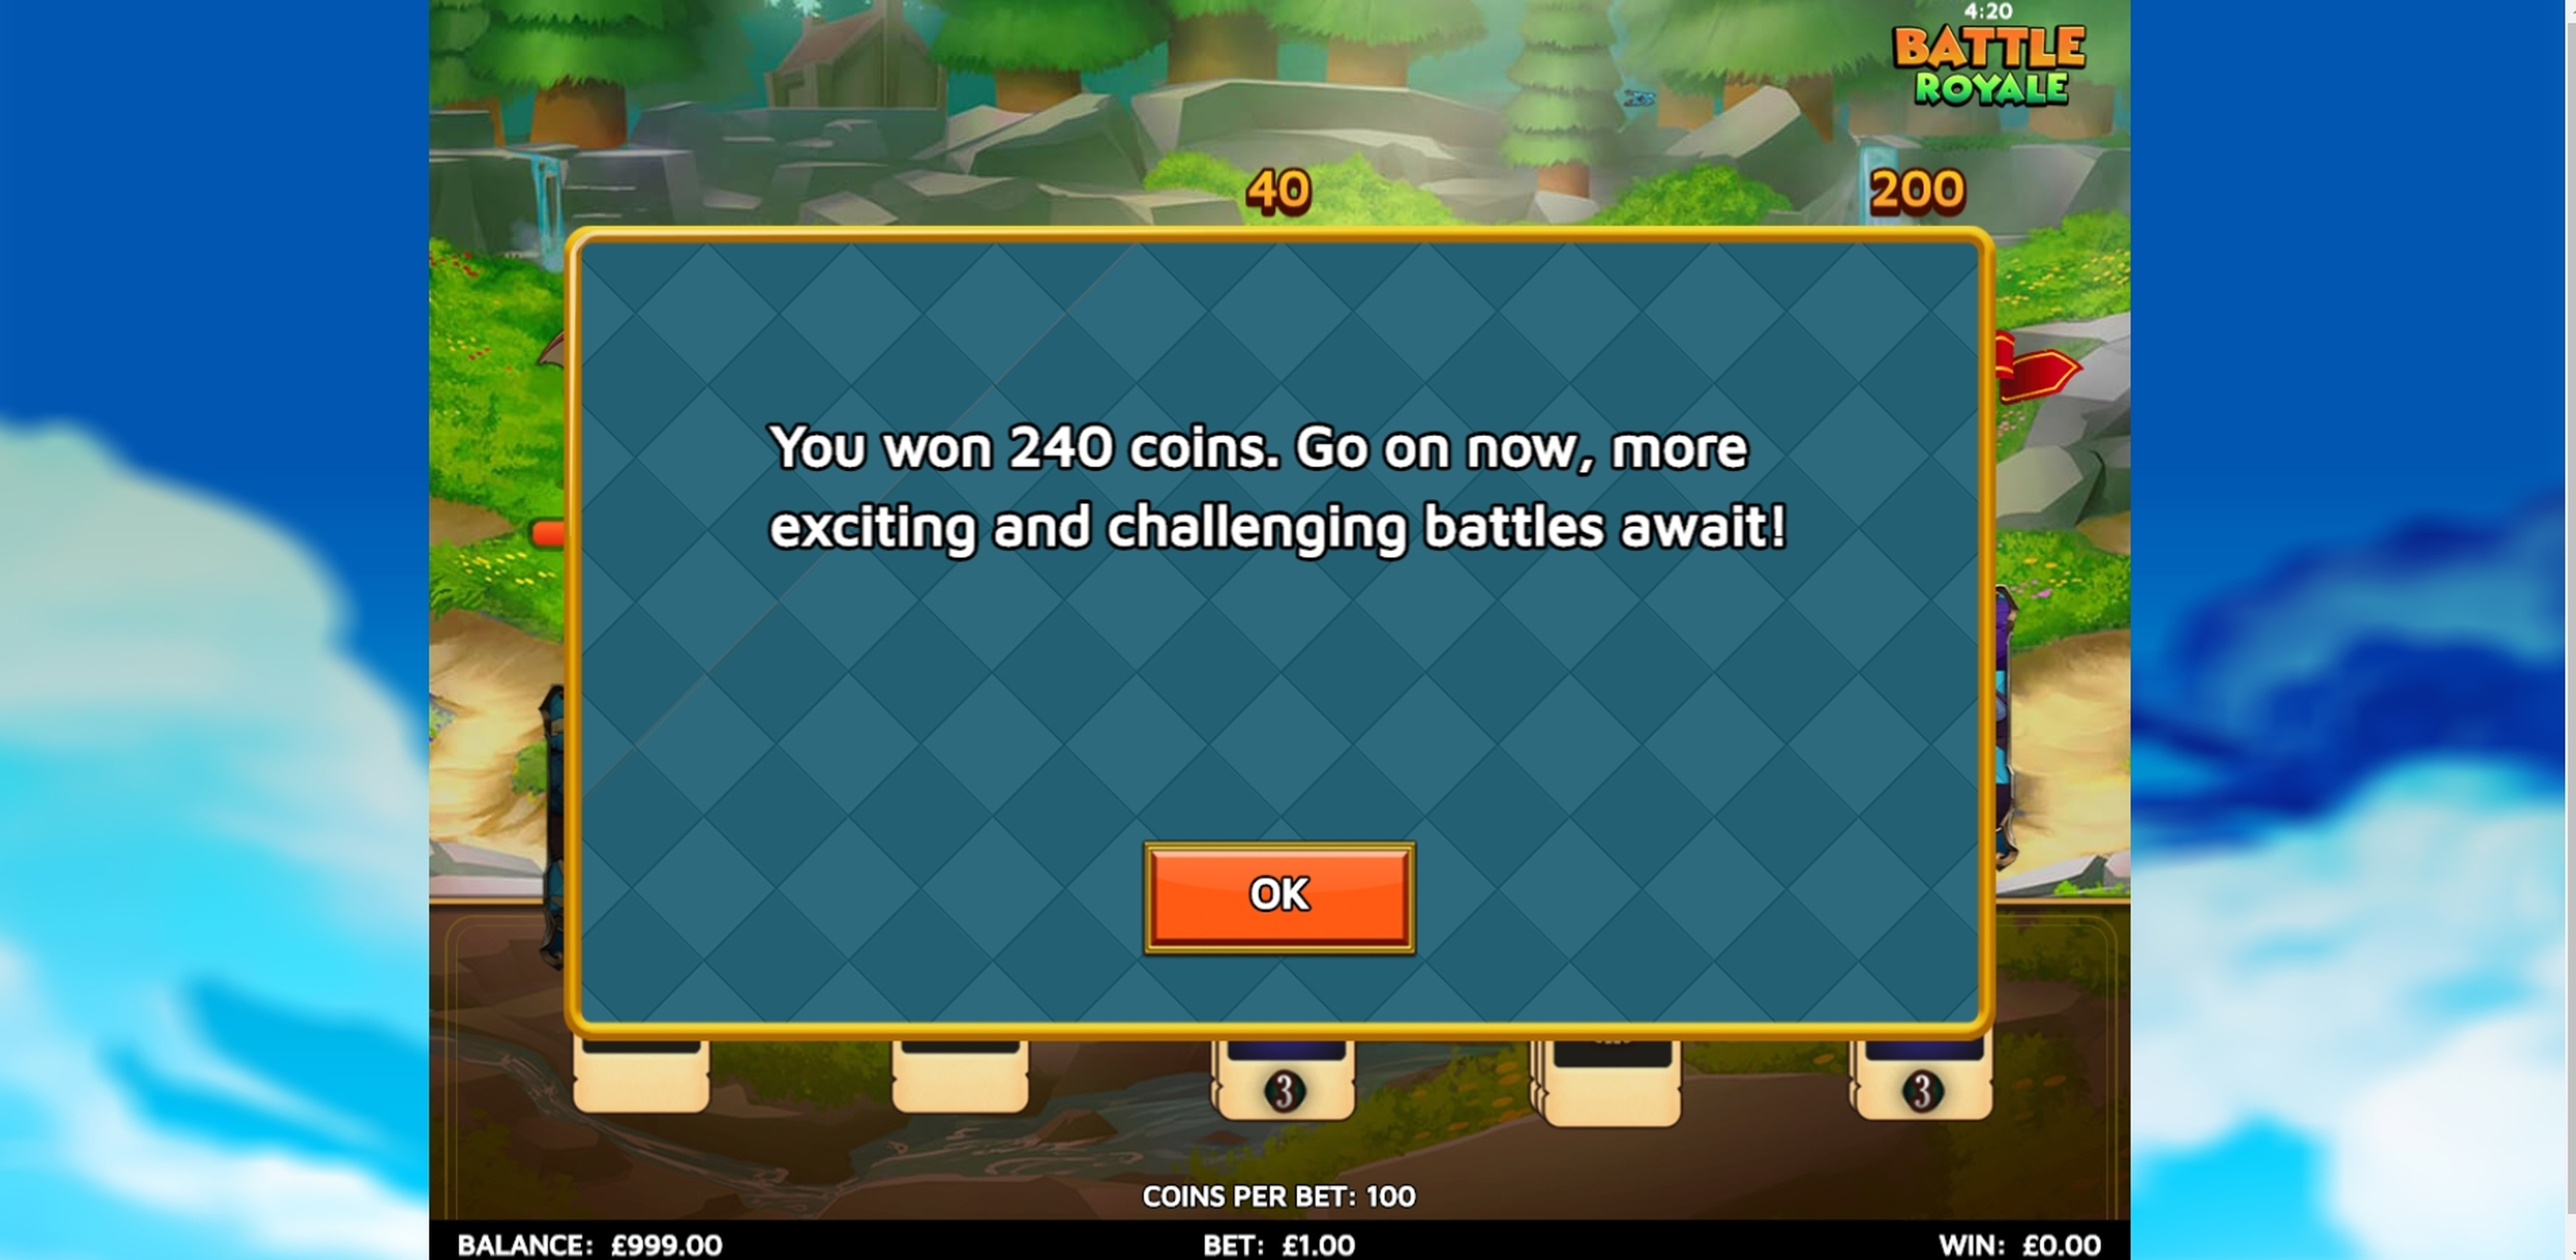 Win Money in Battle Royale (Skillzzgaming) Free Slot Game by Skillzzgaming